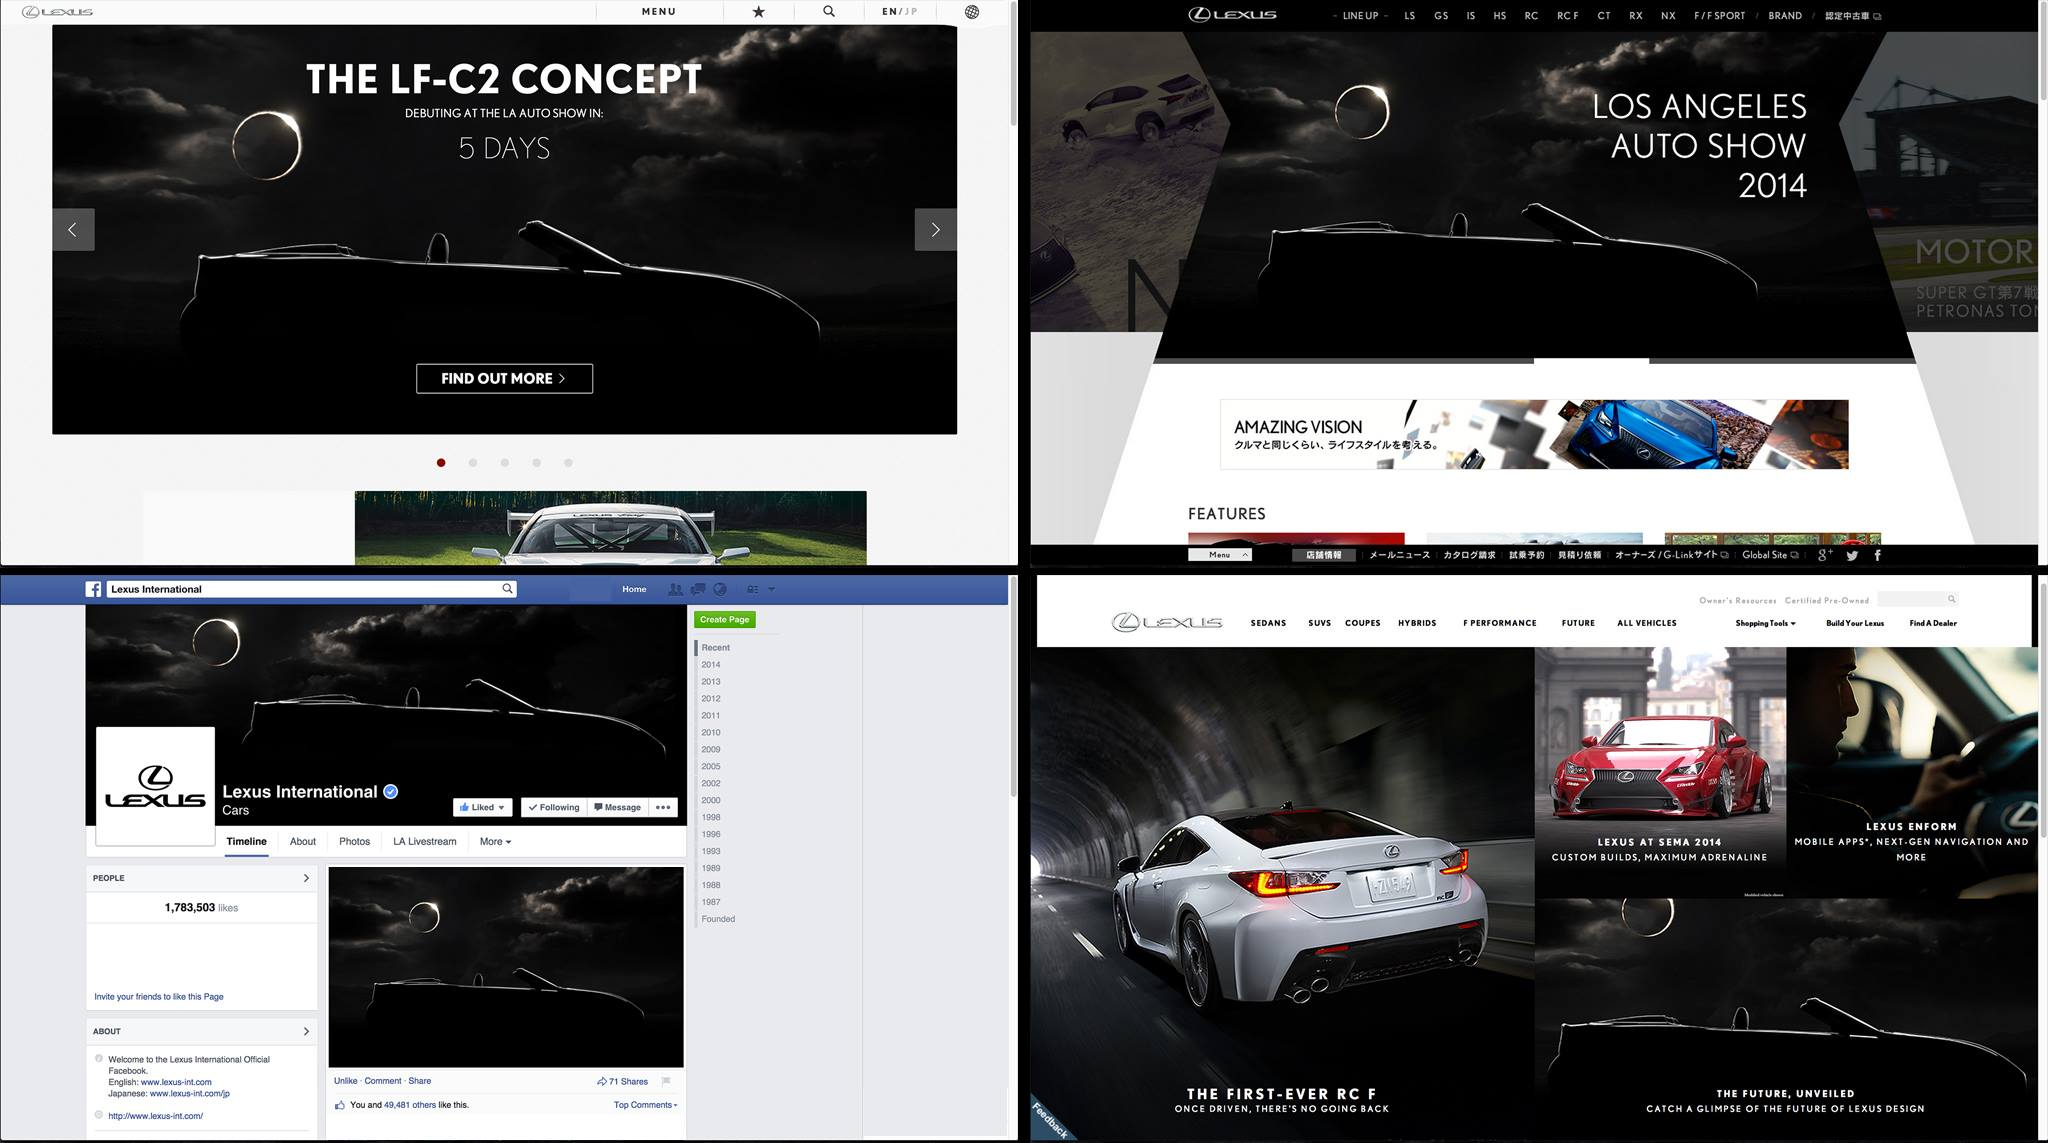 The Initlal teaser image on various Lexus outlets